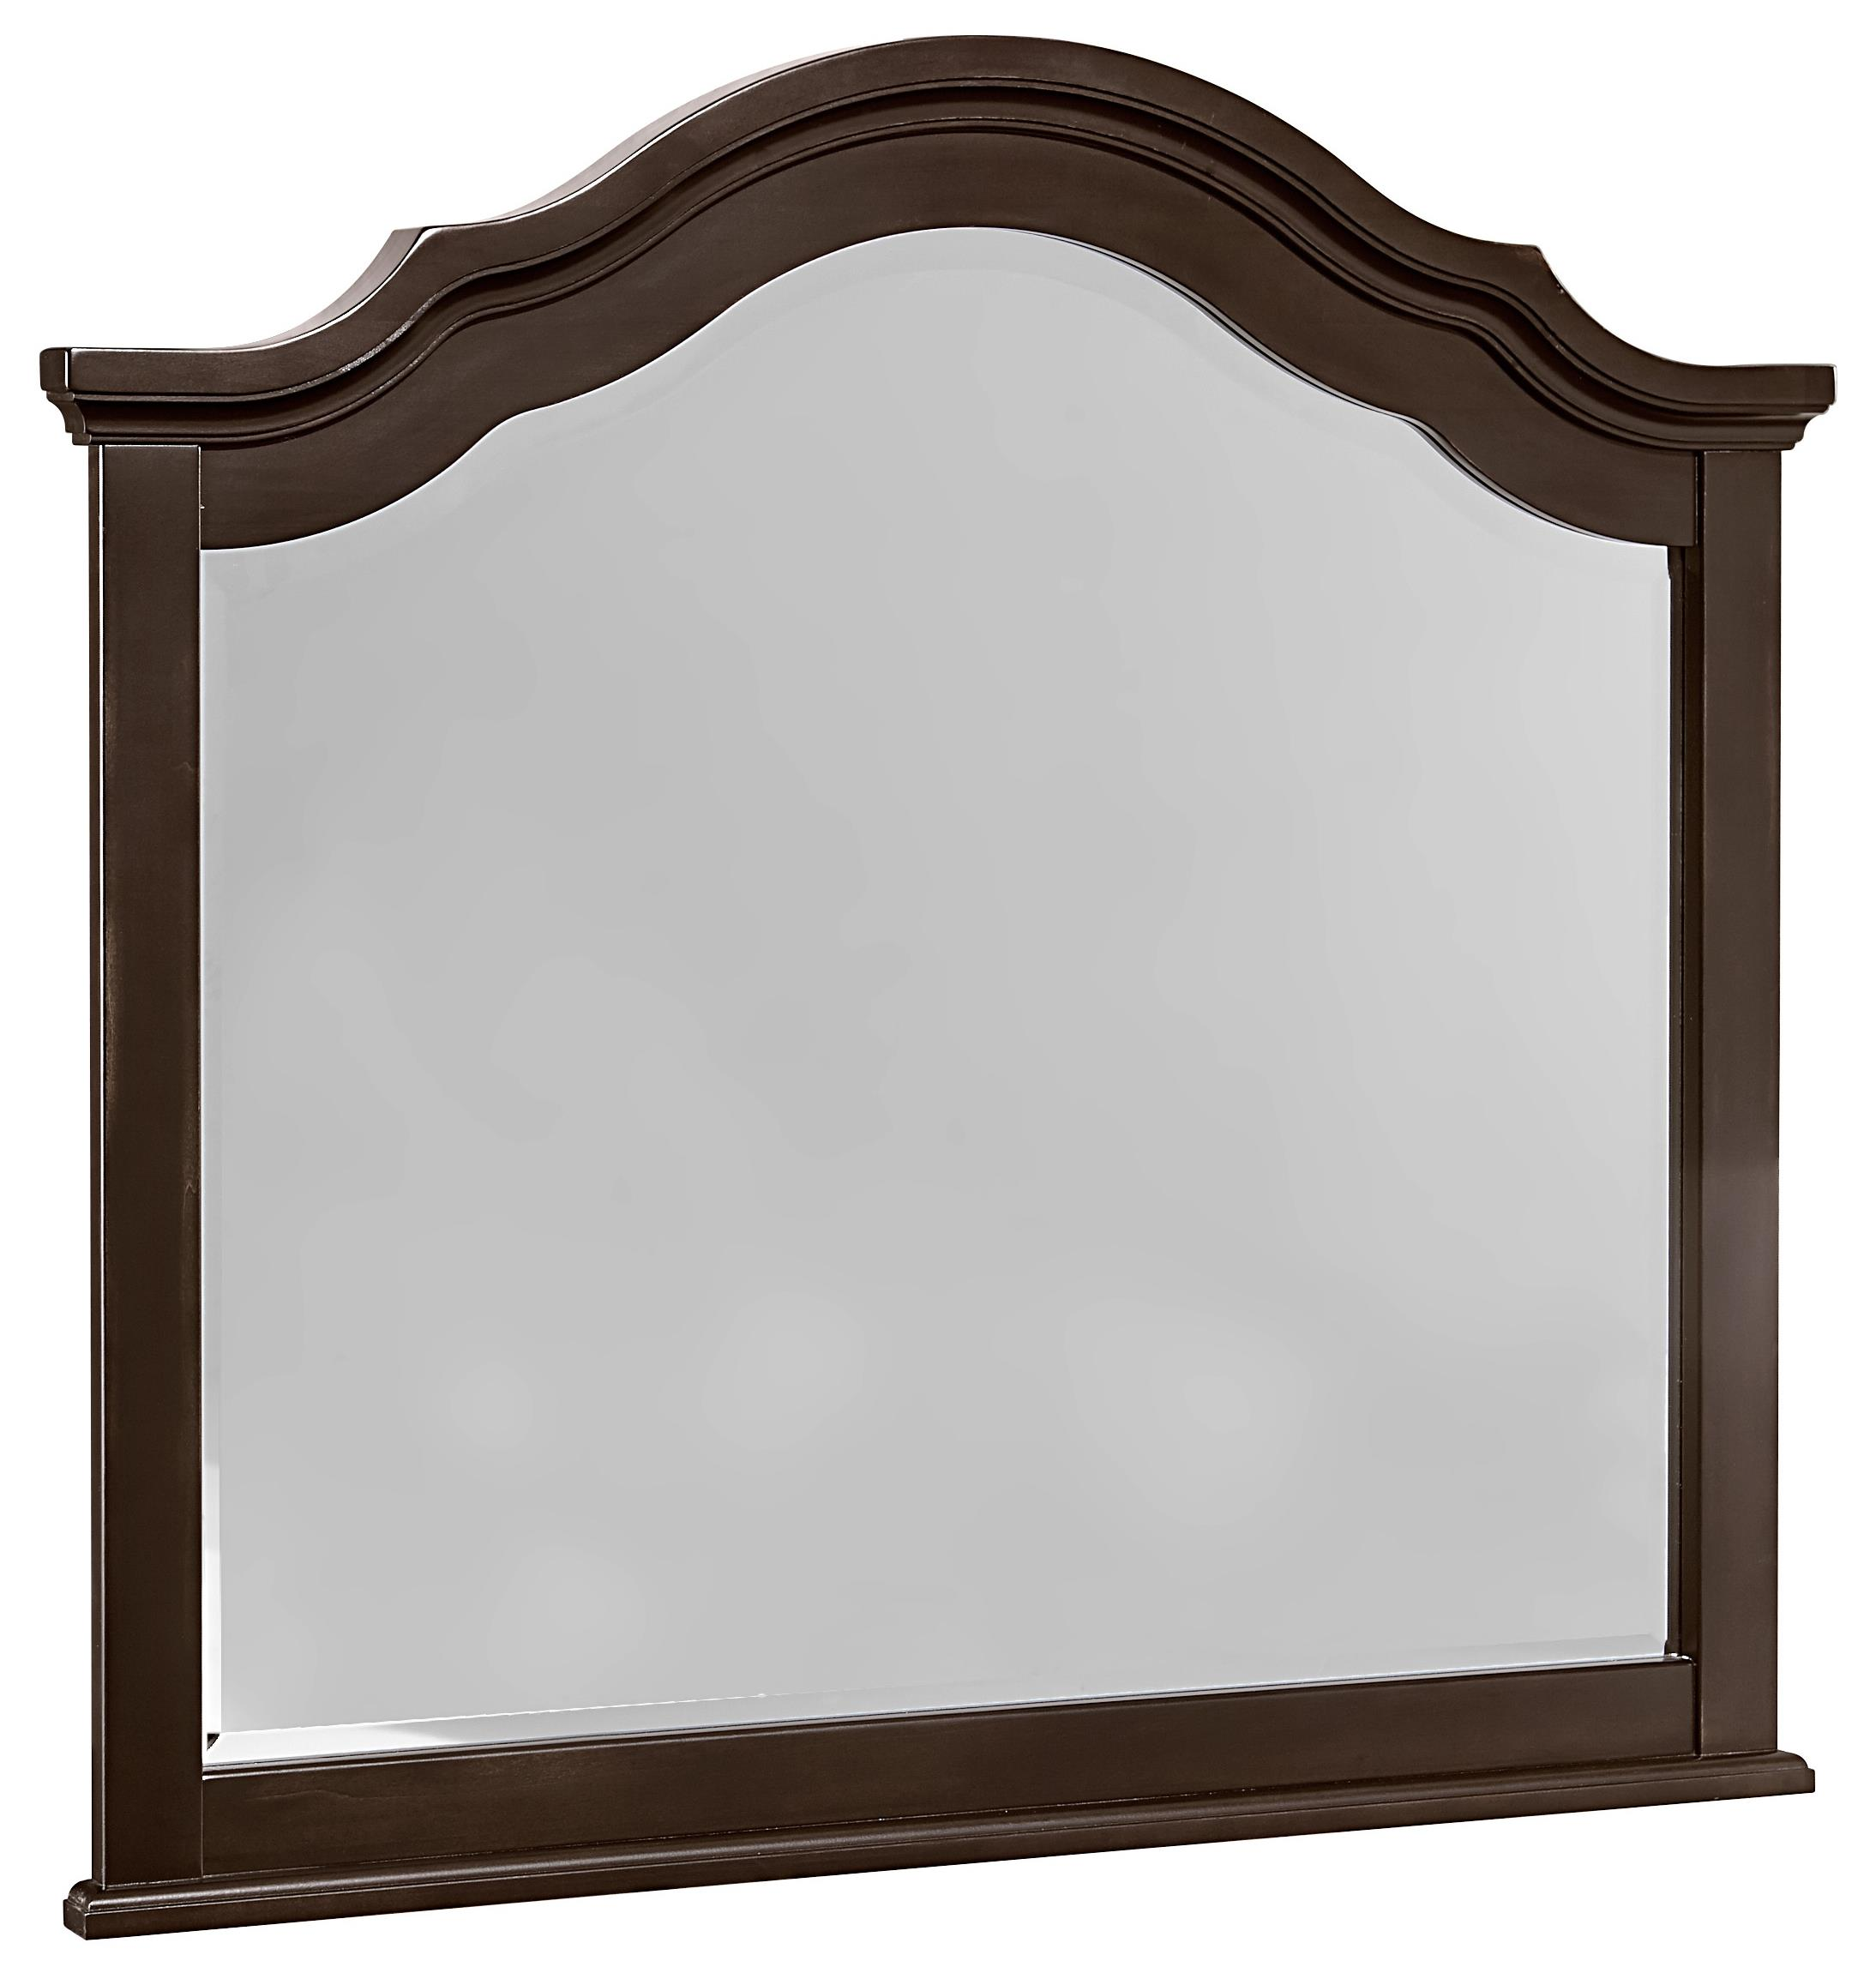 Vaughan Bassett French Market Arched Mirror - Item Number: 380-447